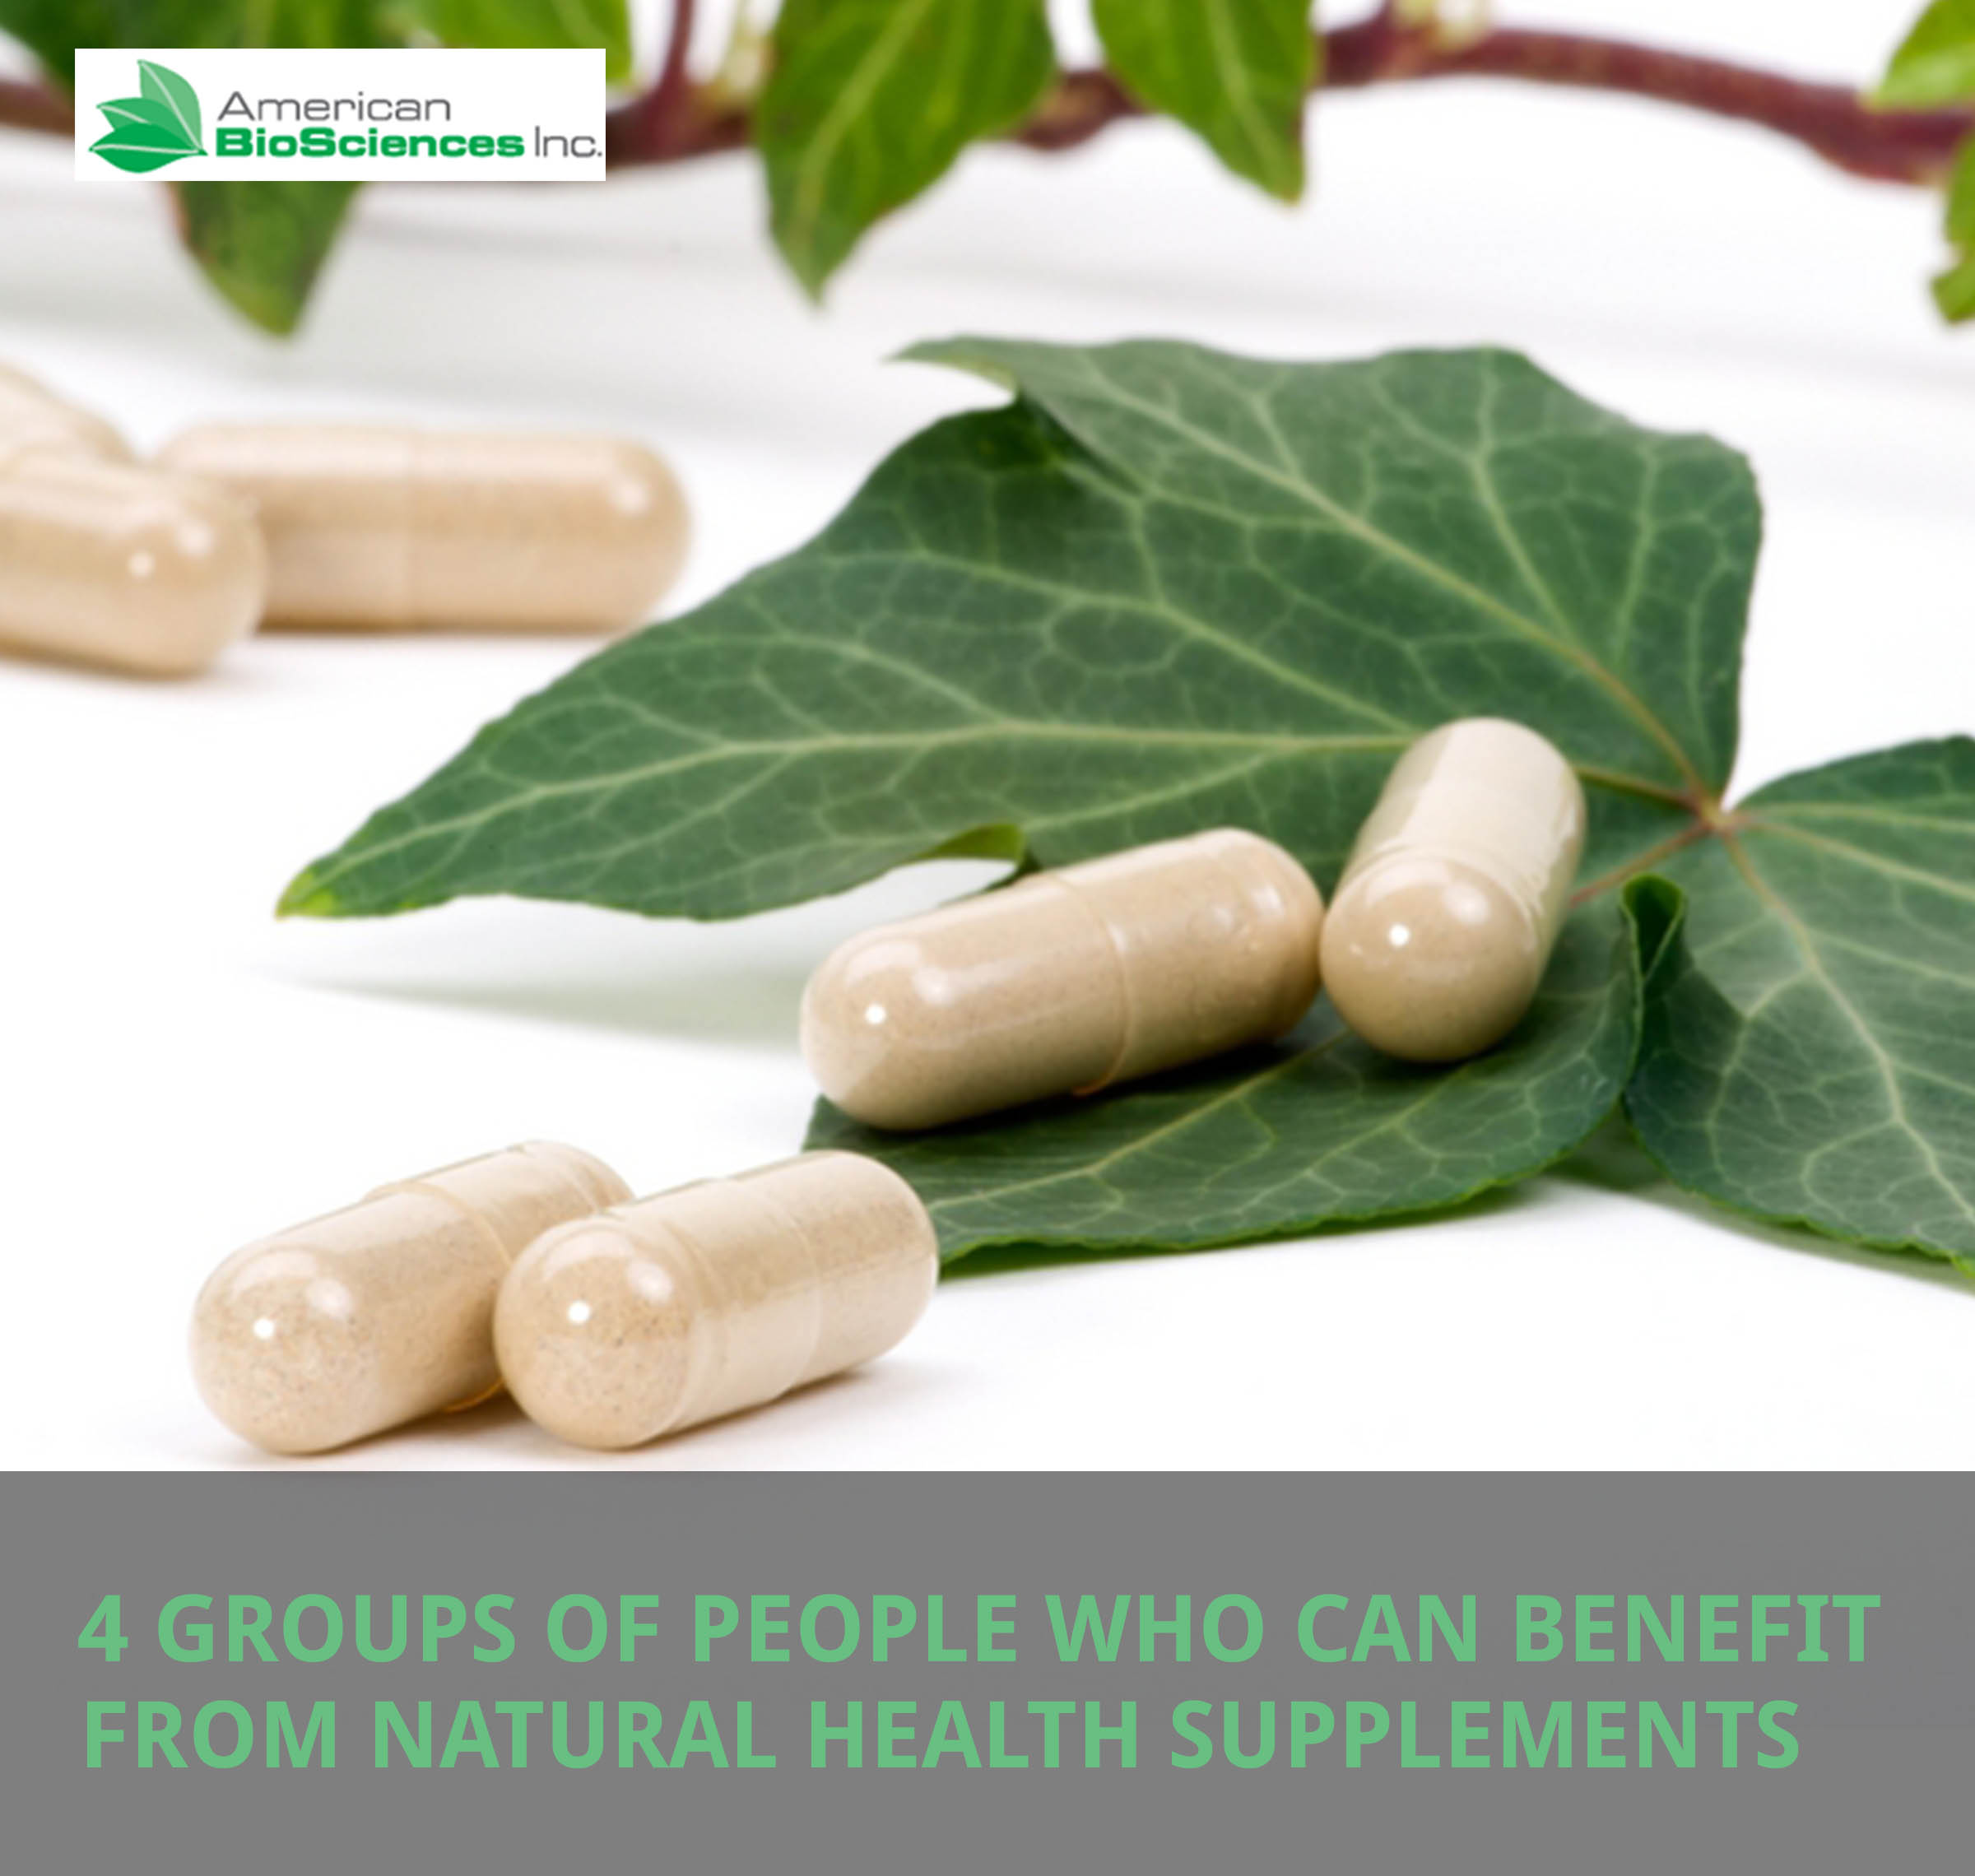 4 groups of people who can benefit from natural health supplements